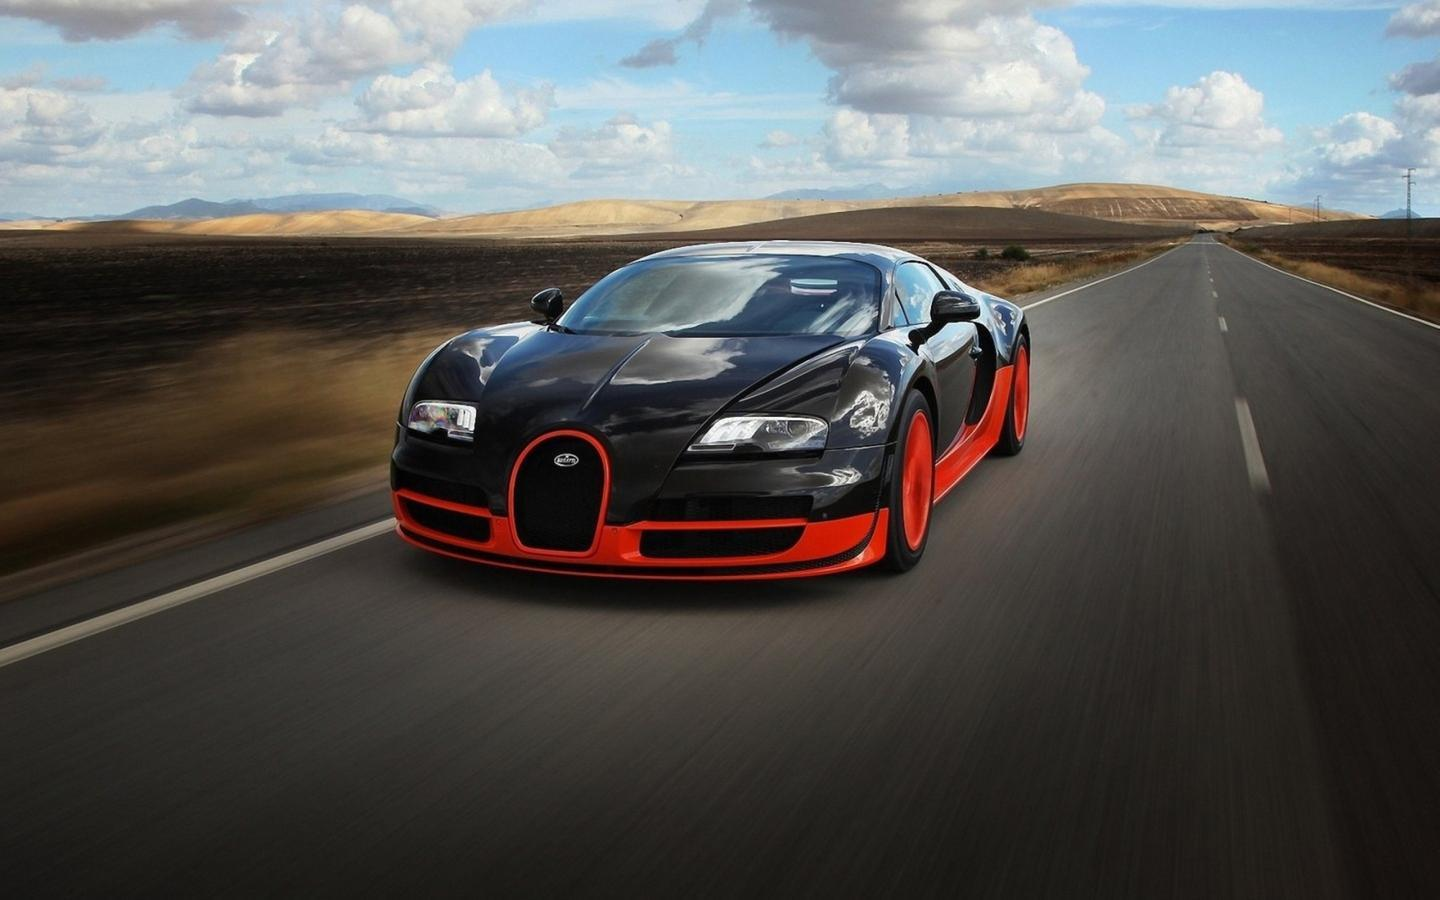 Bugatti Veyron Super Sport Wallpaper Hd: Bugatti Veyron Wallpapers HD